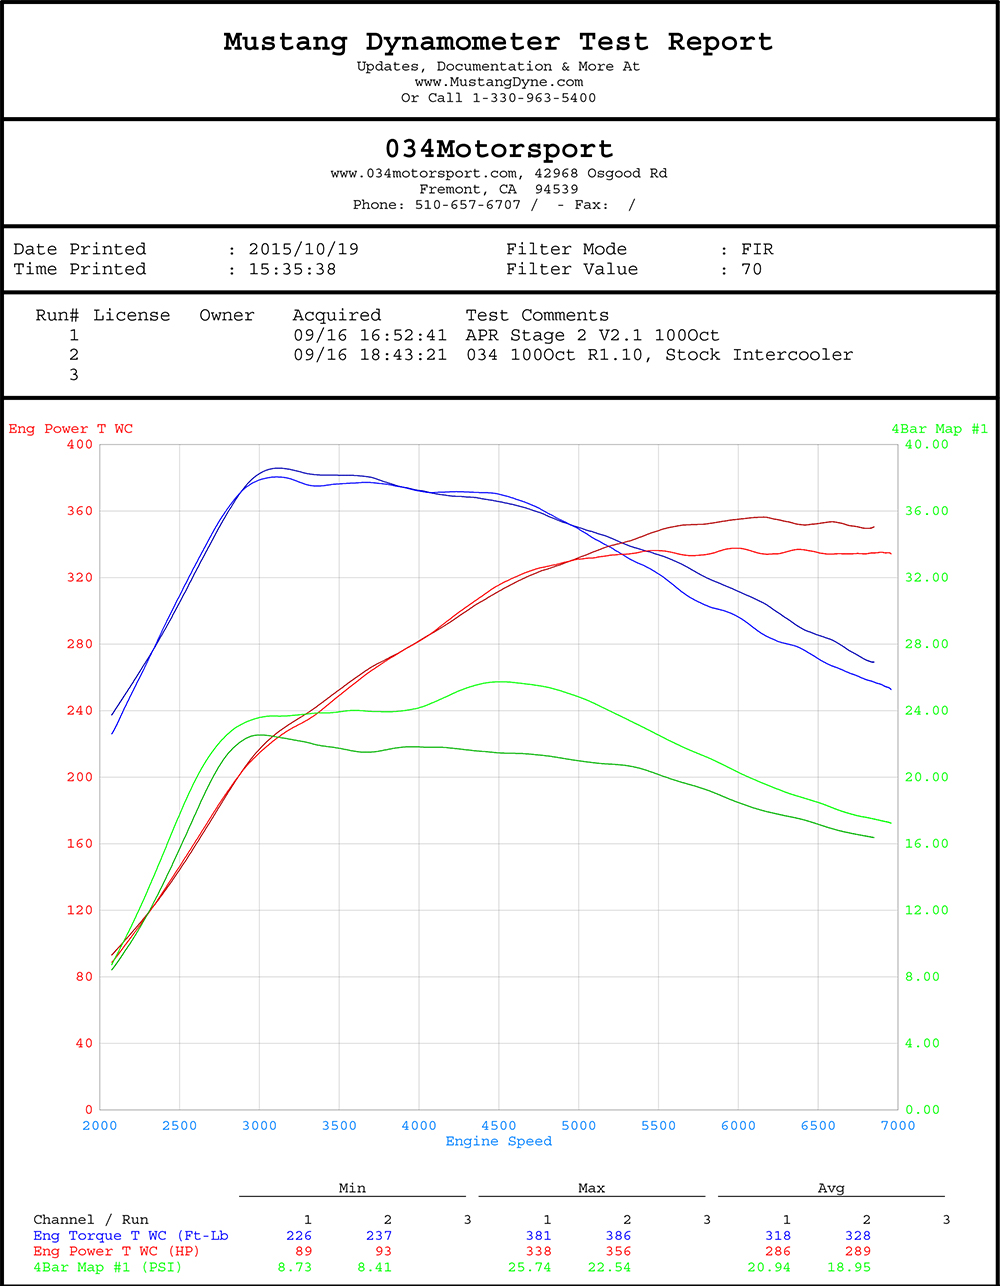 2.5 TFSI Stage 2 Tune by 034Motorsport vs APR Stage 2